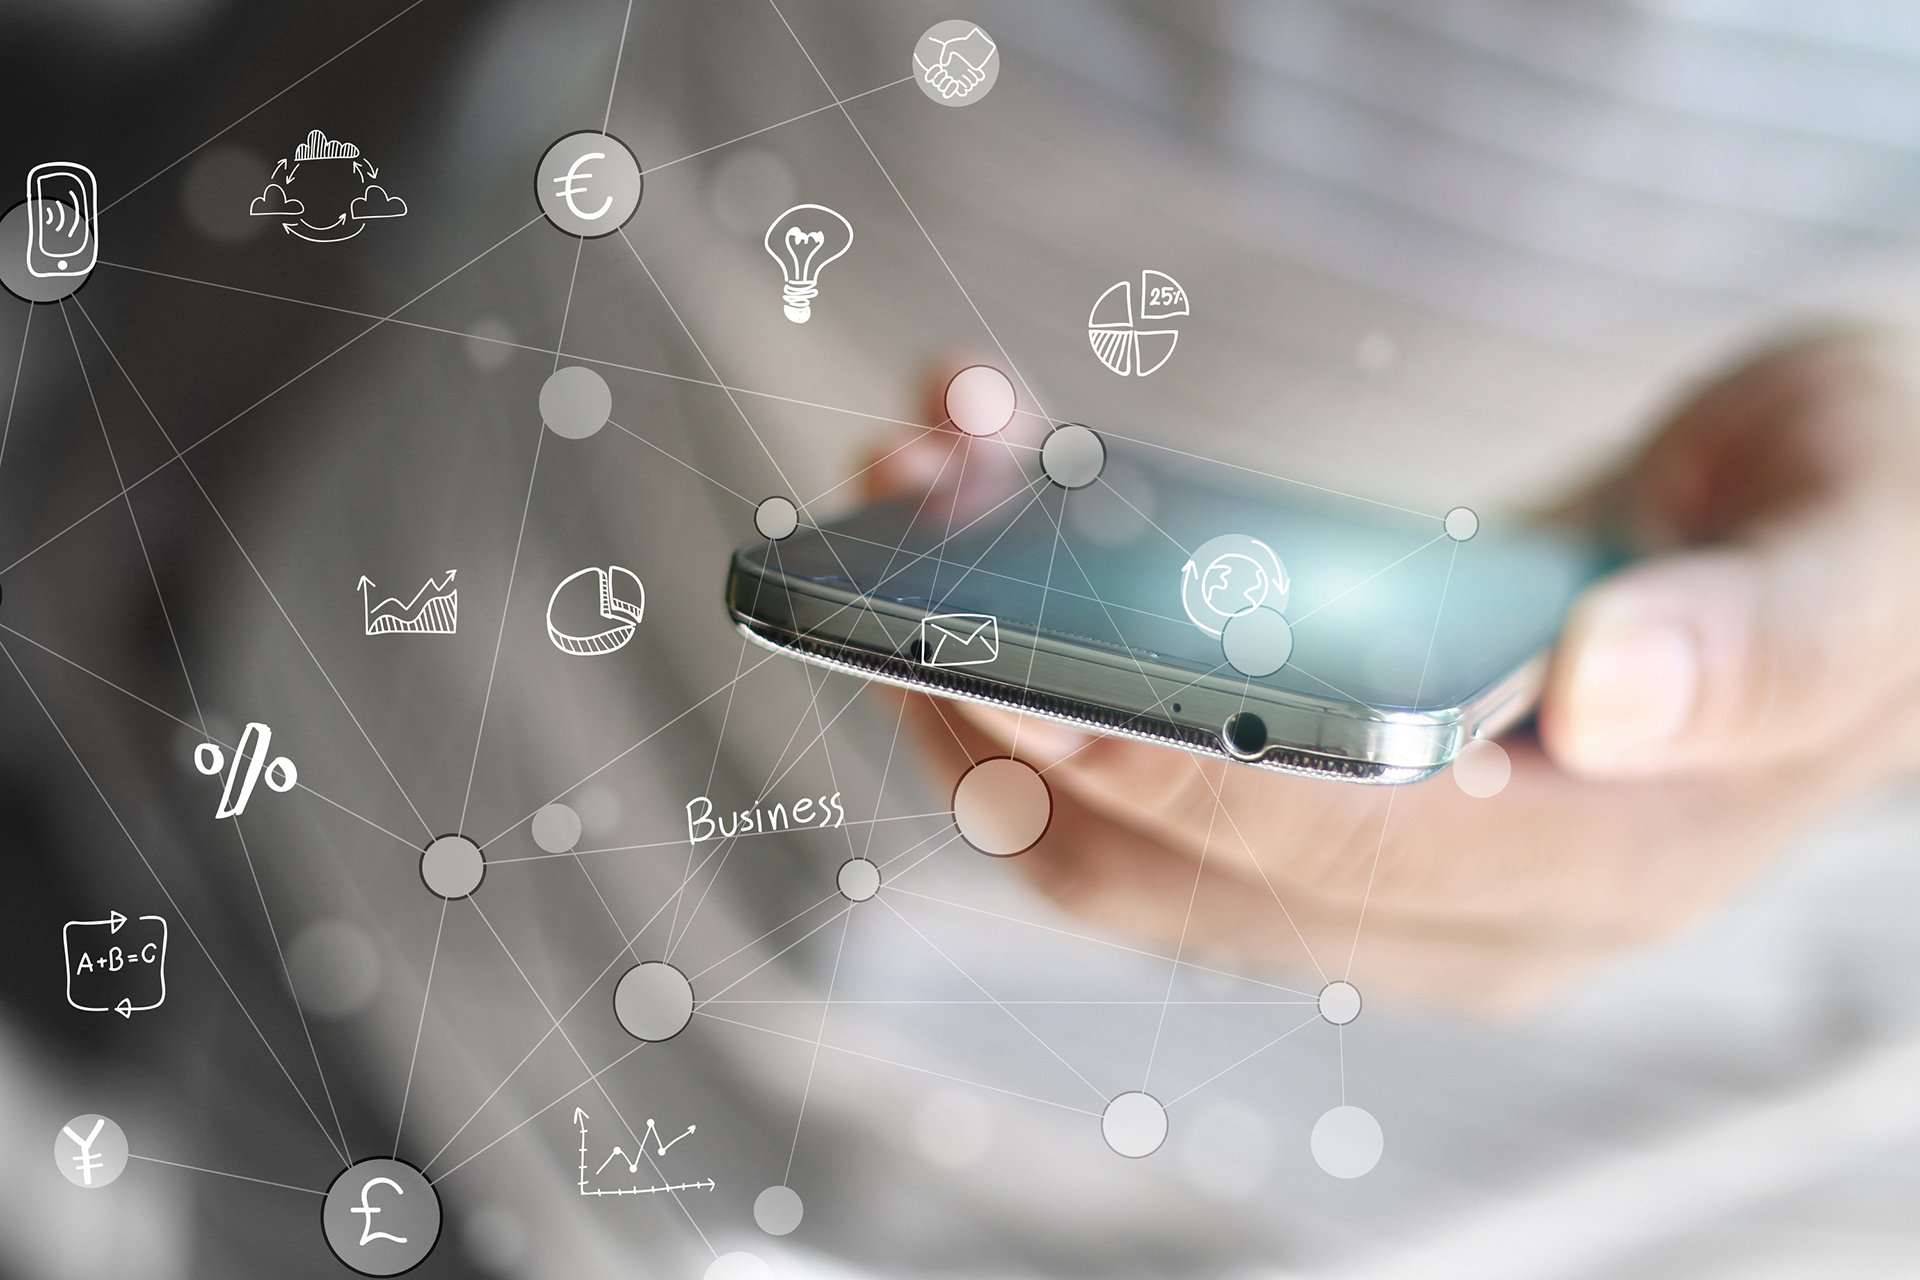 Mobile app growth is connected across multiple touch points